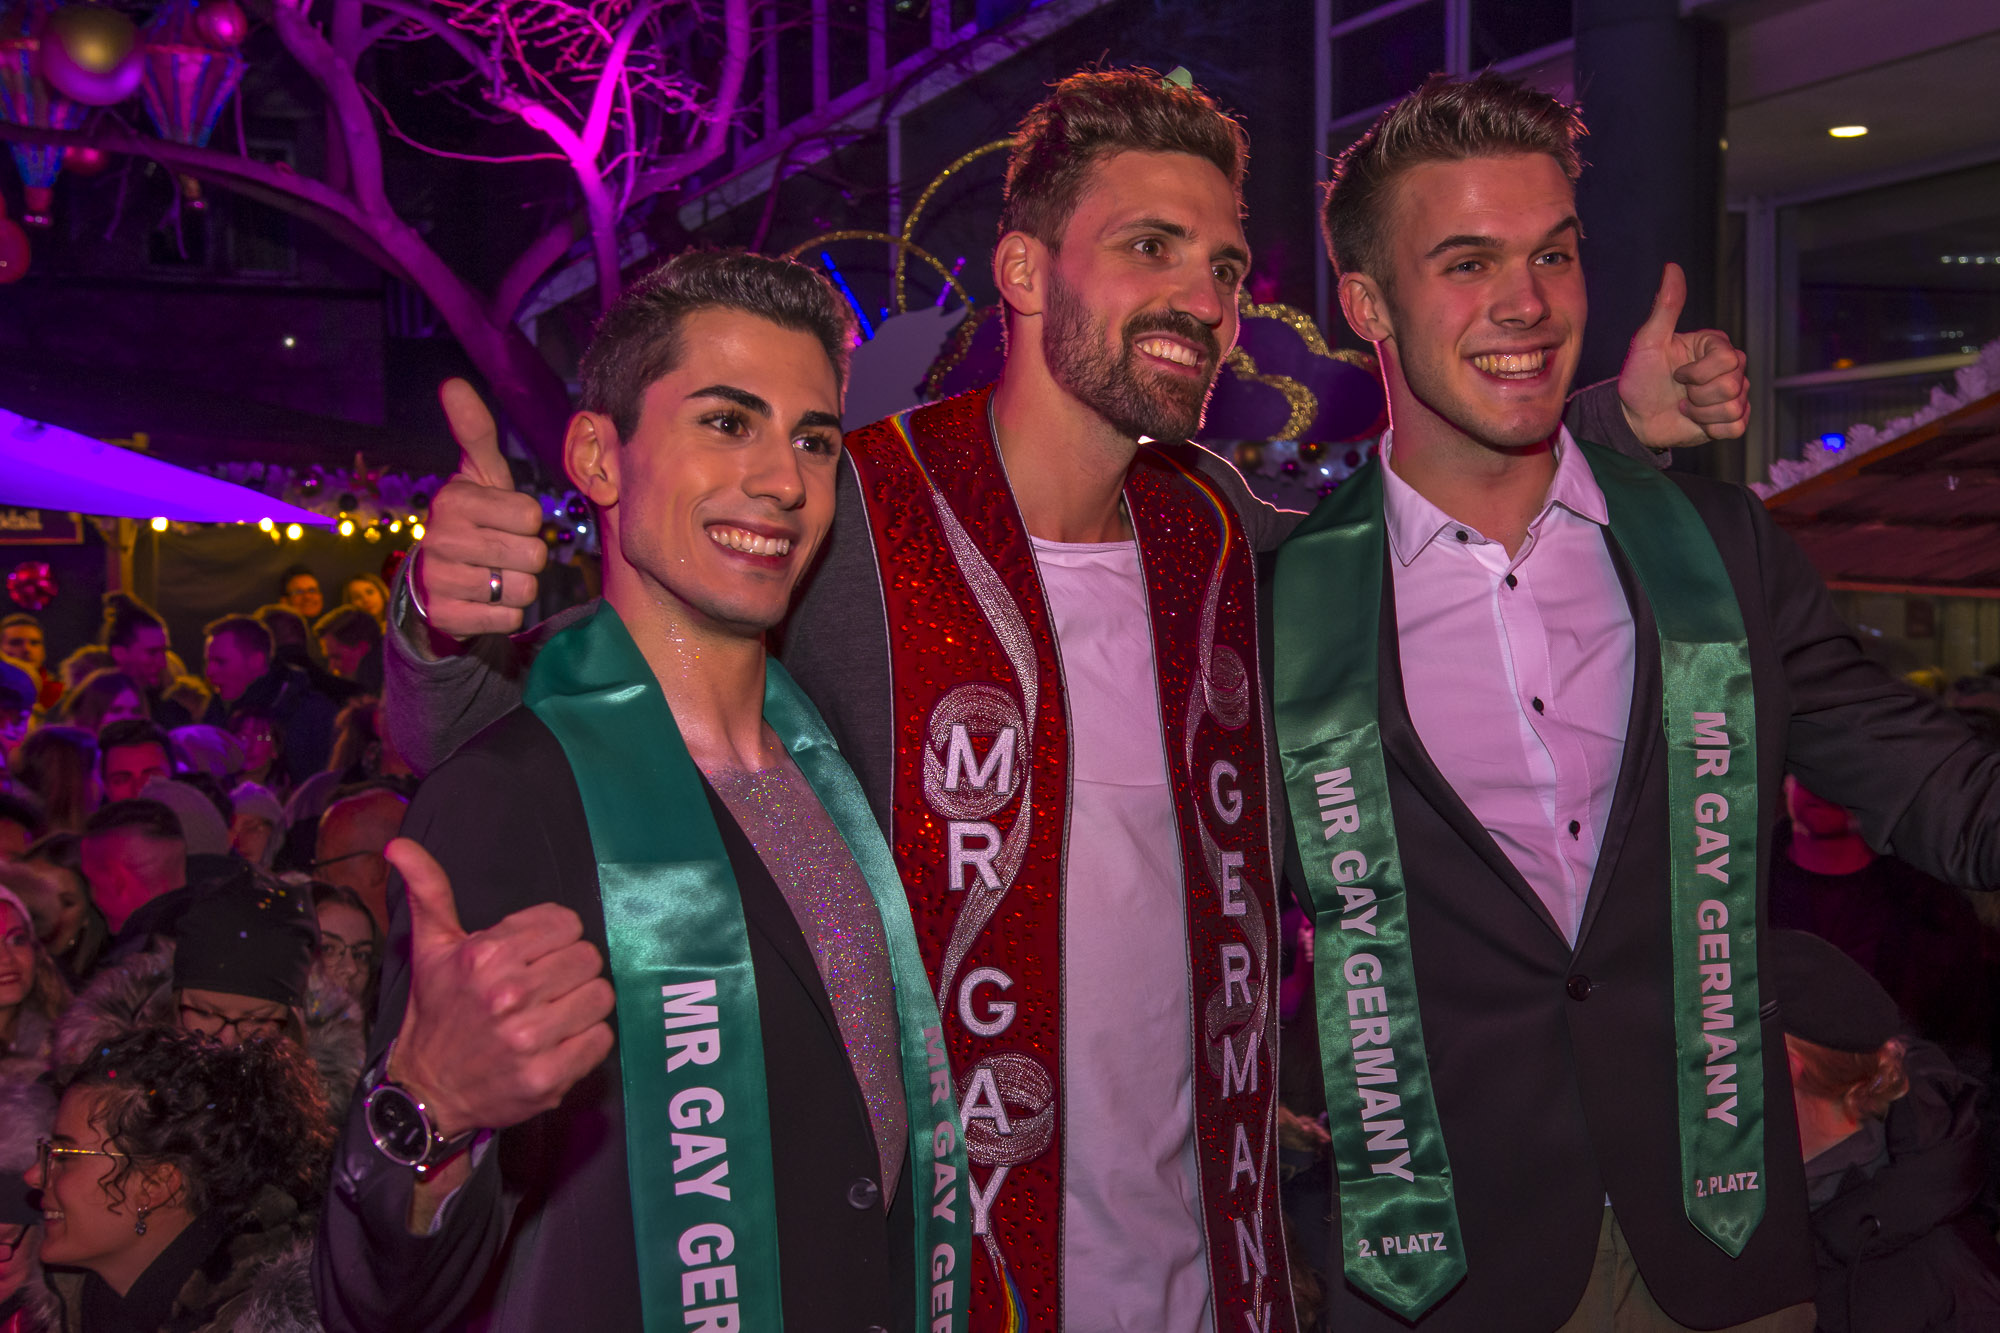 Neuer Mr Gay Germany 2019